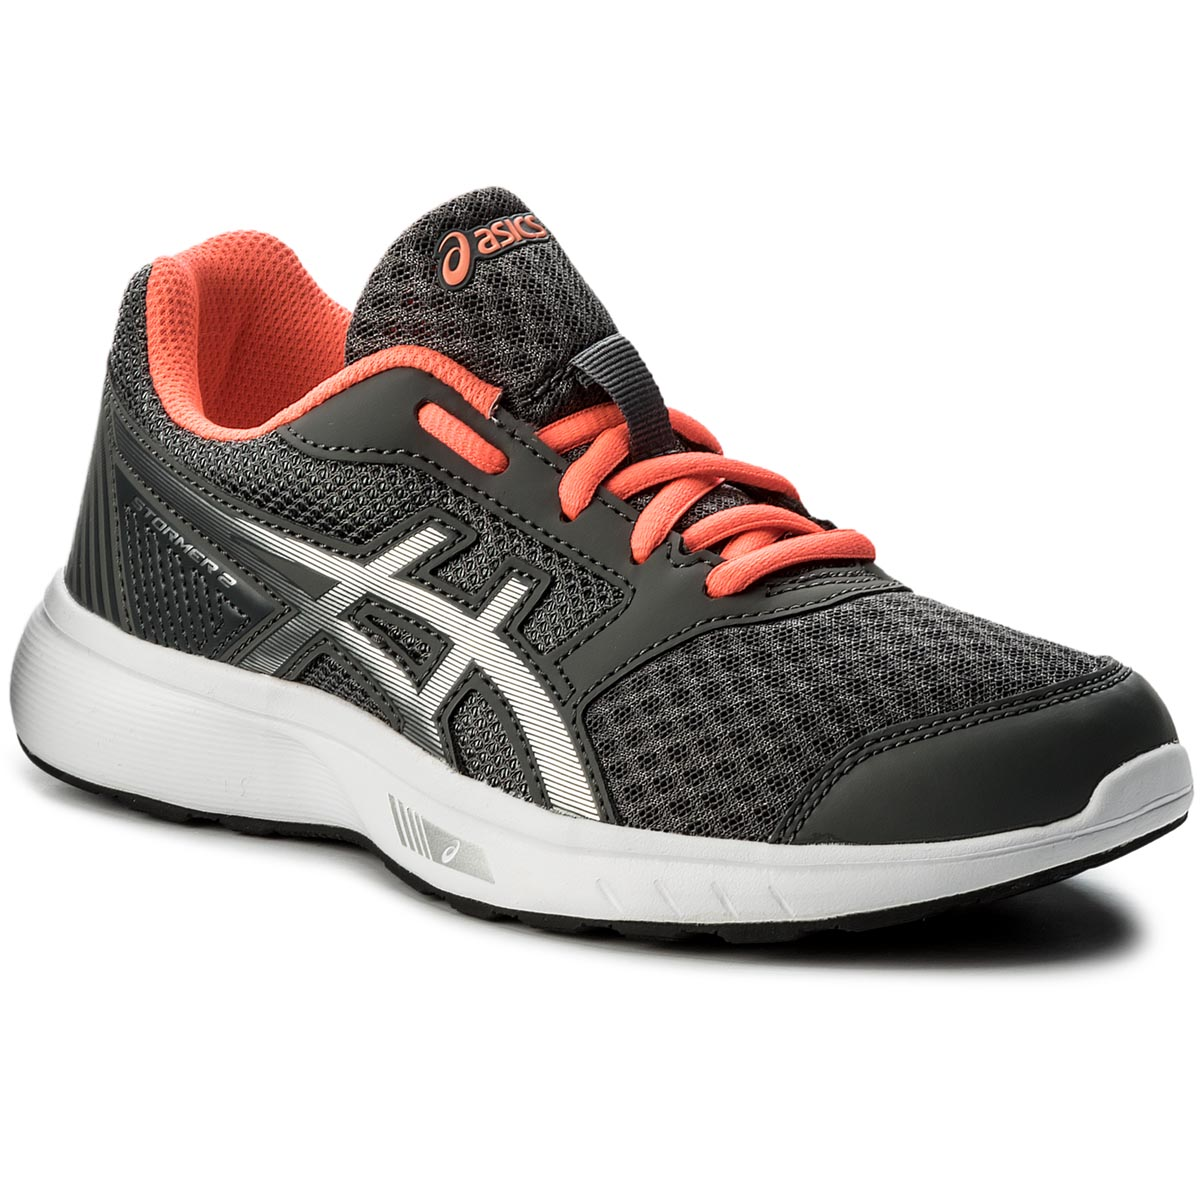 Buty ASICS - Stormer 2 T893N  Carbon/Silver/Flash Coral 9793